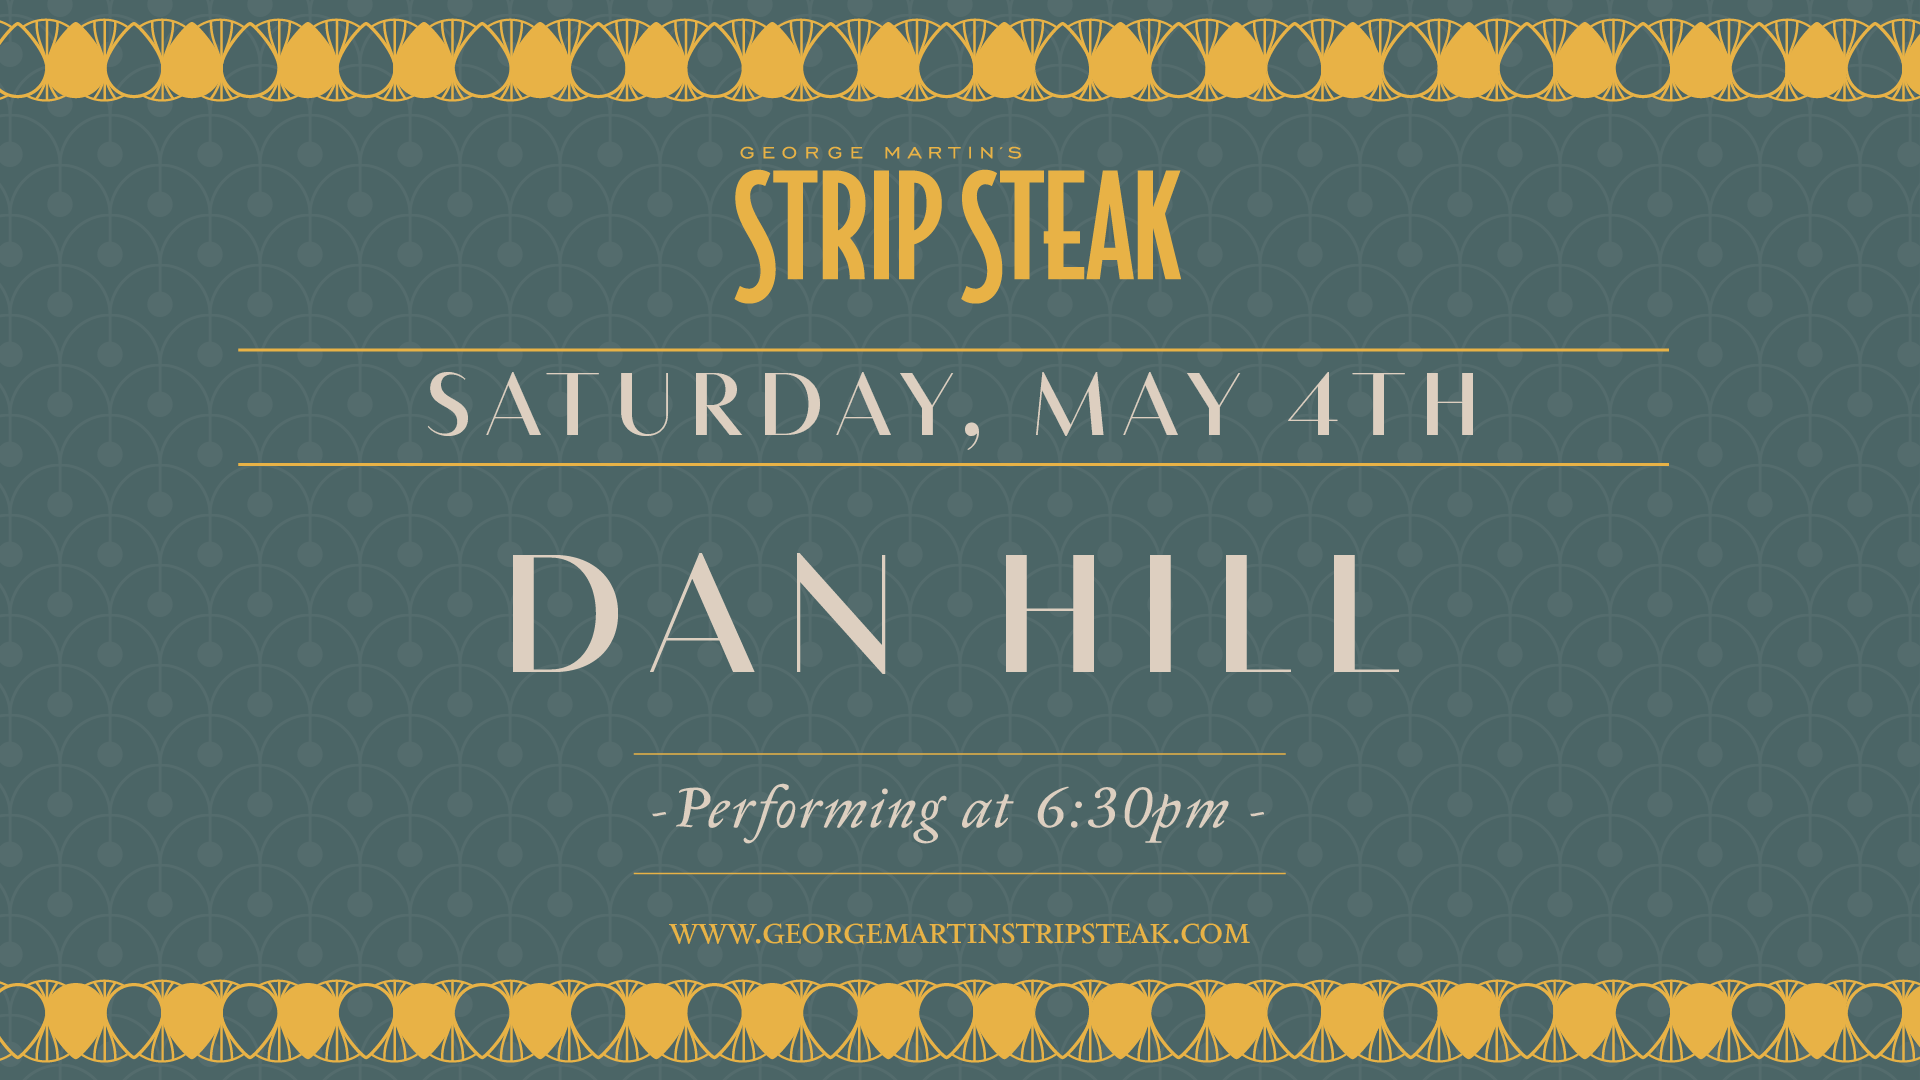 Flyer for live music with Dan Hill at 6:30pm